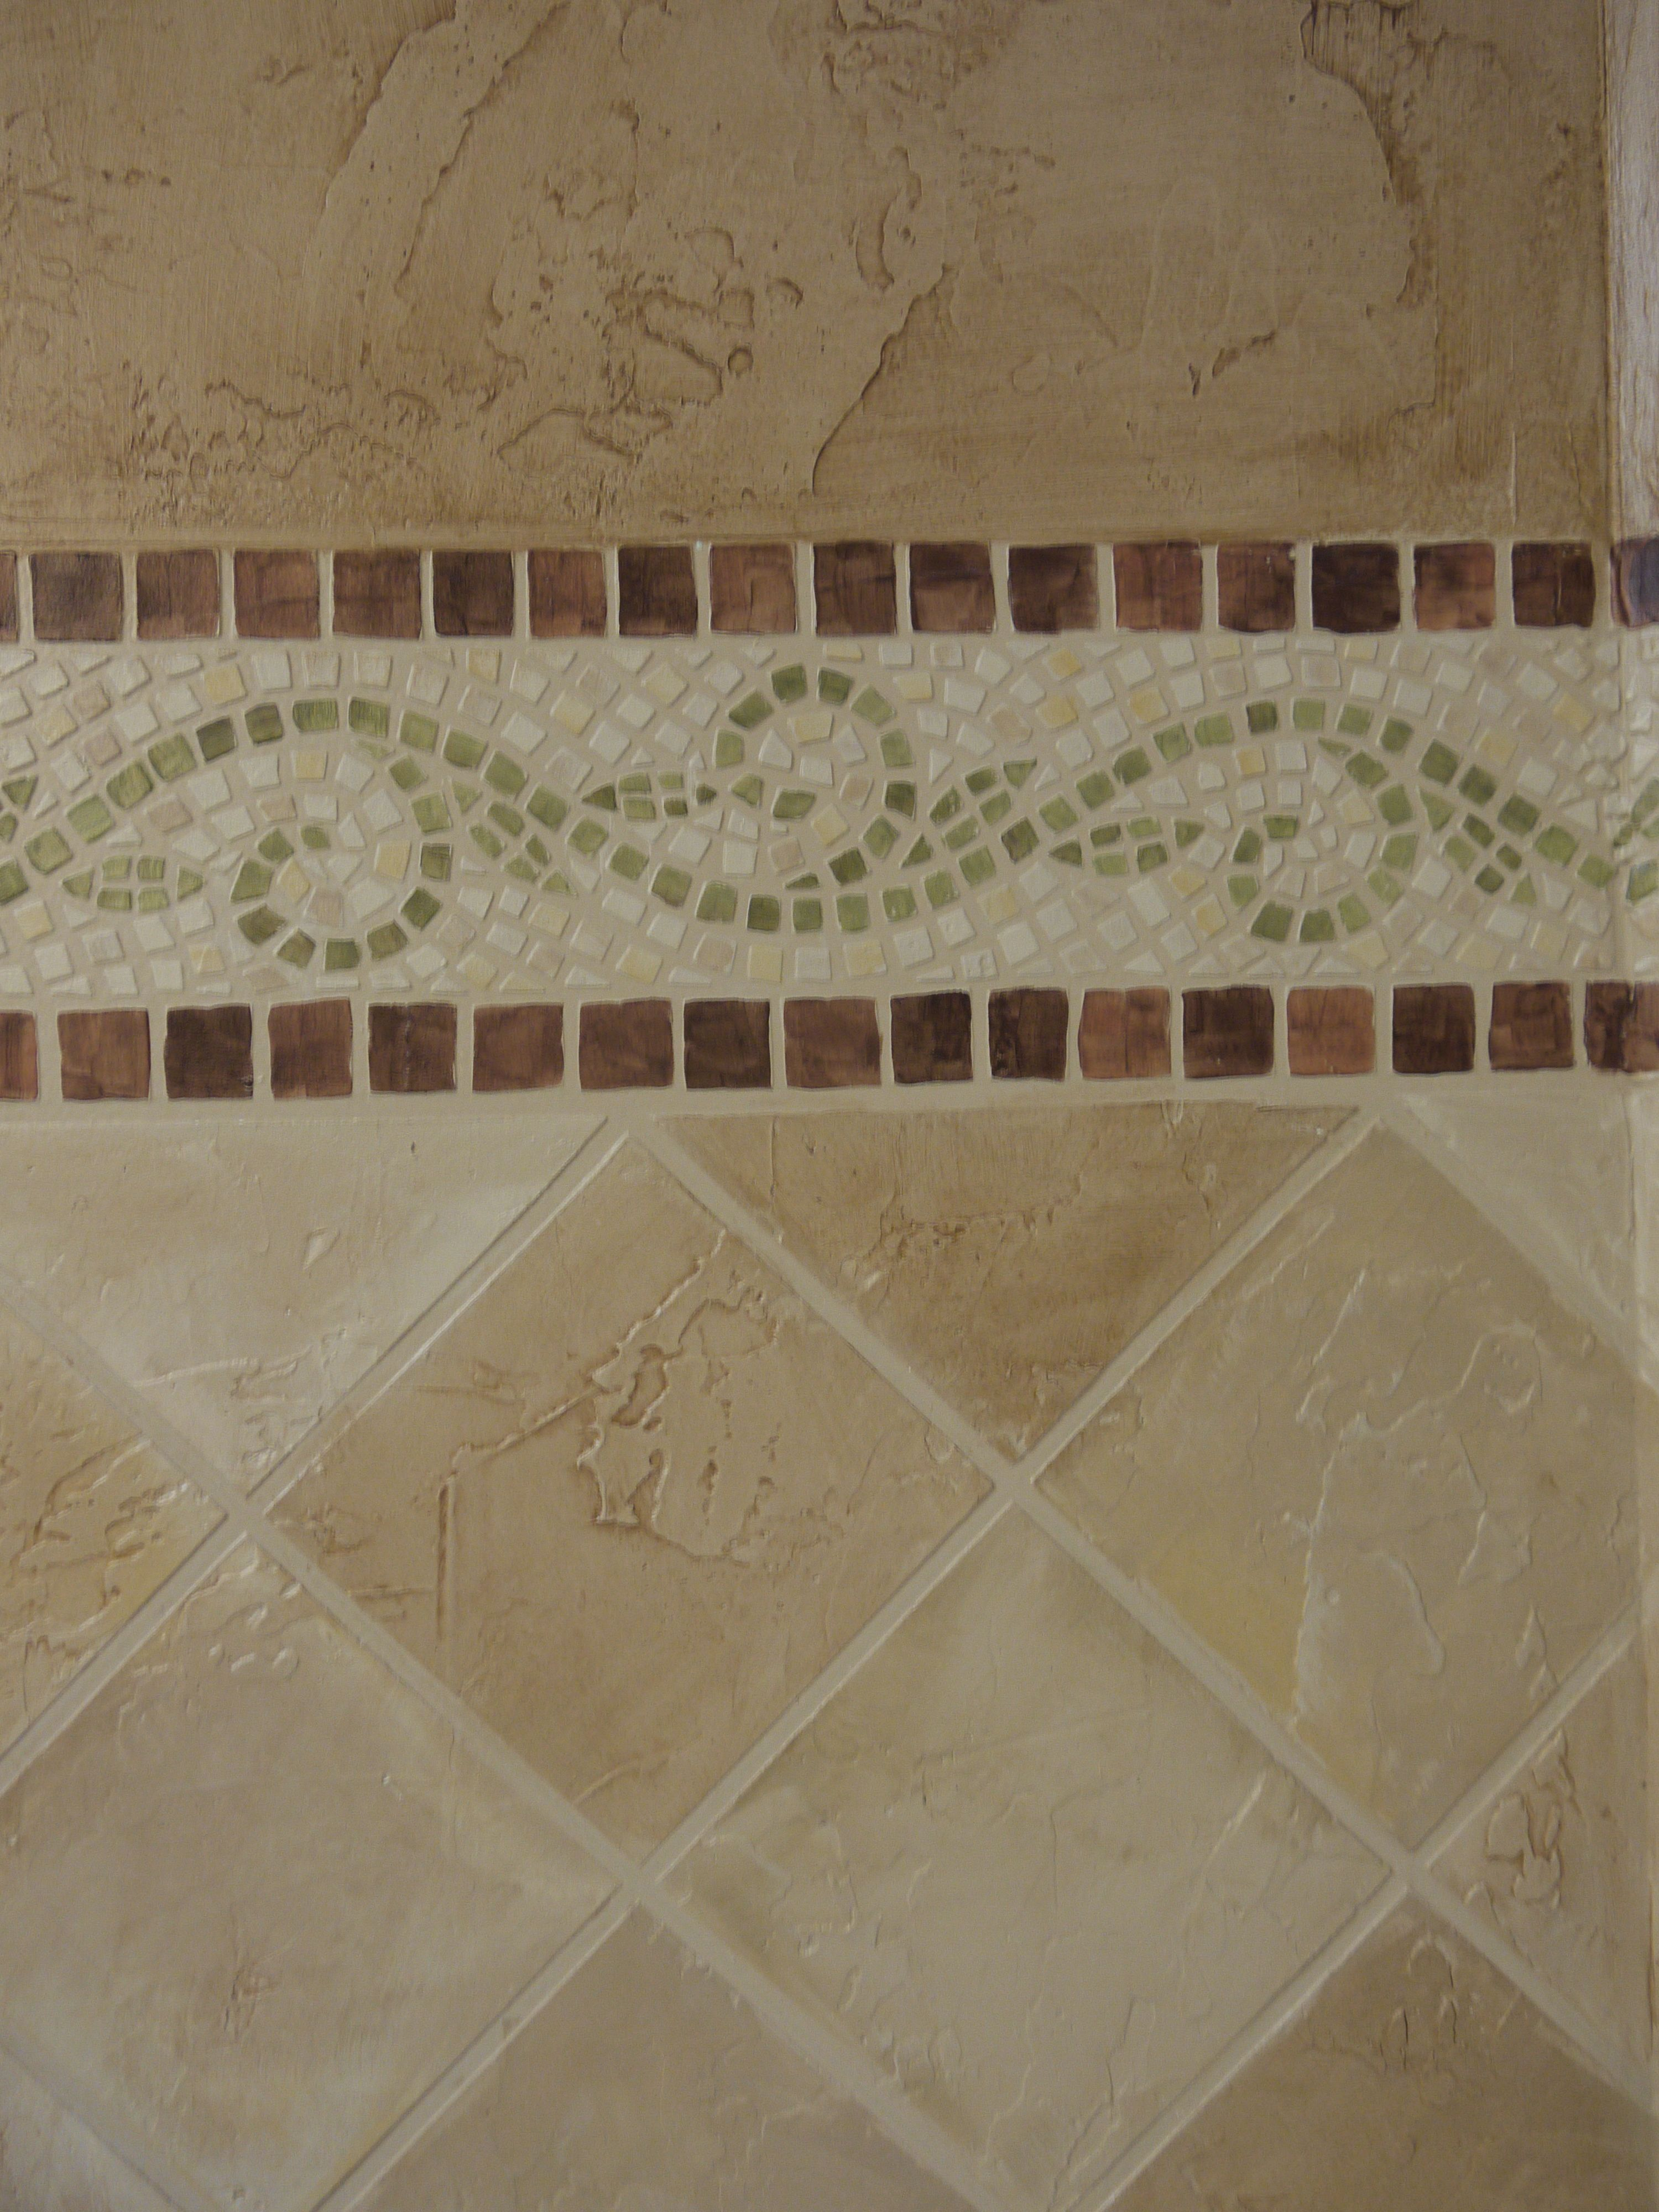 How to how to make faux mosaic and stone tiles using joint how to how to make faux mosaic and stone tiles using joint compound tutorial doublecrazyfo Images